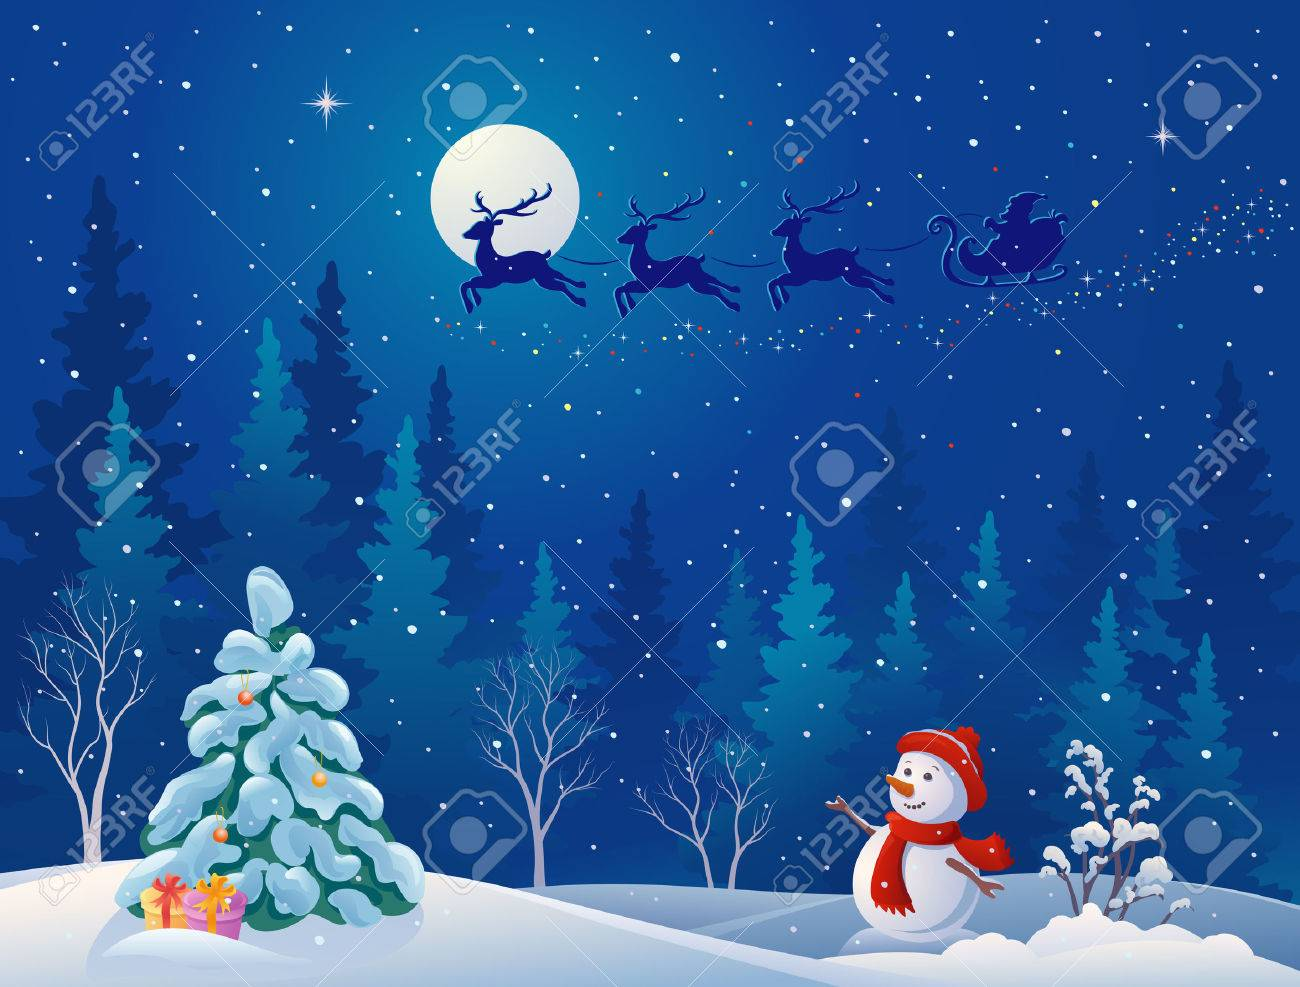 Vector illustration of Santa's sleigh flying over woods, and greeting snowman - 23039606